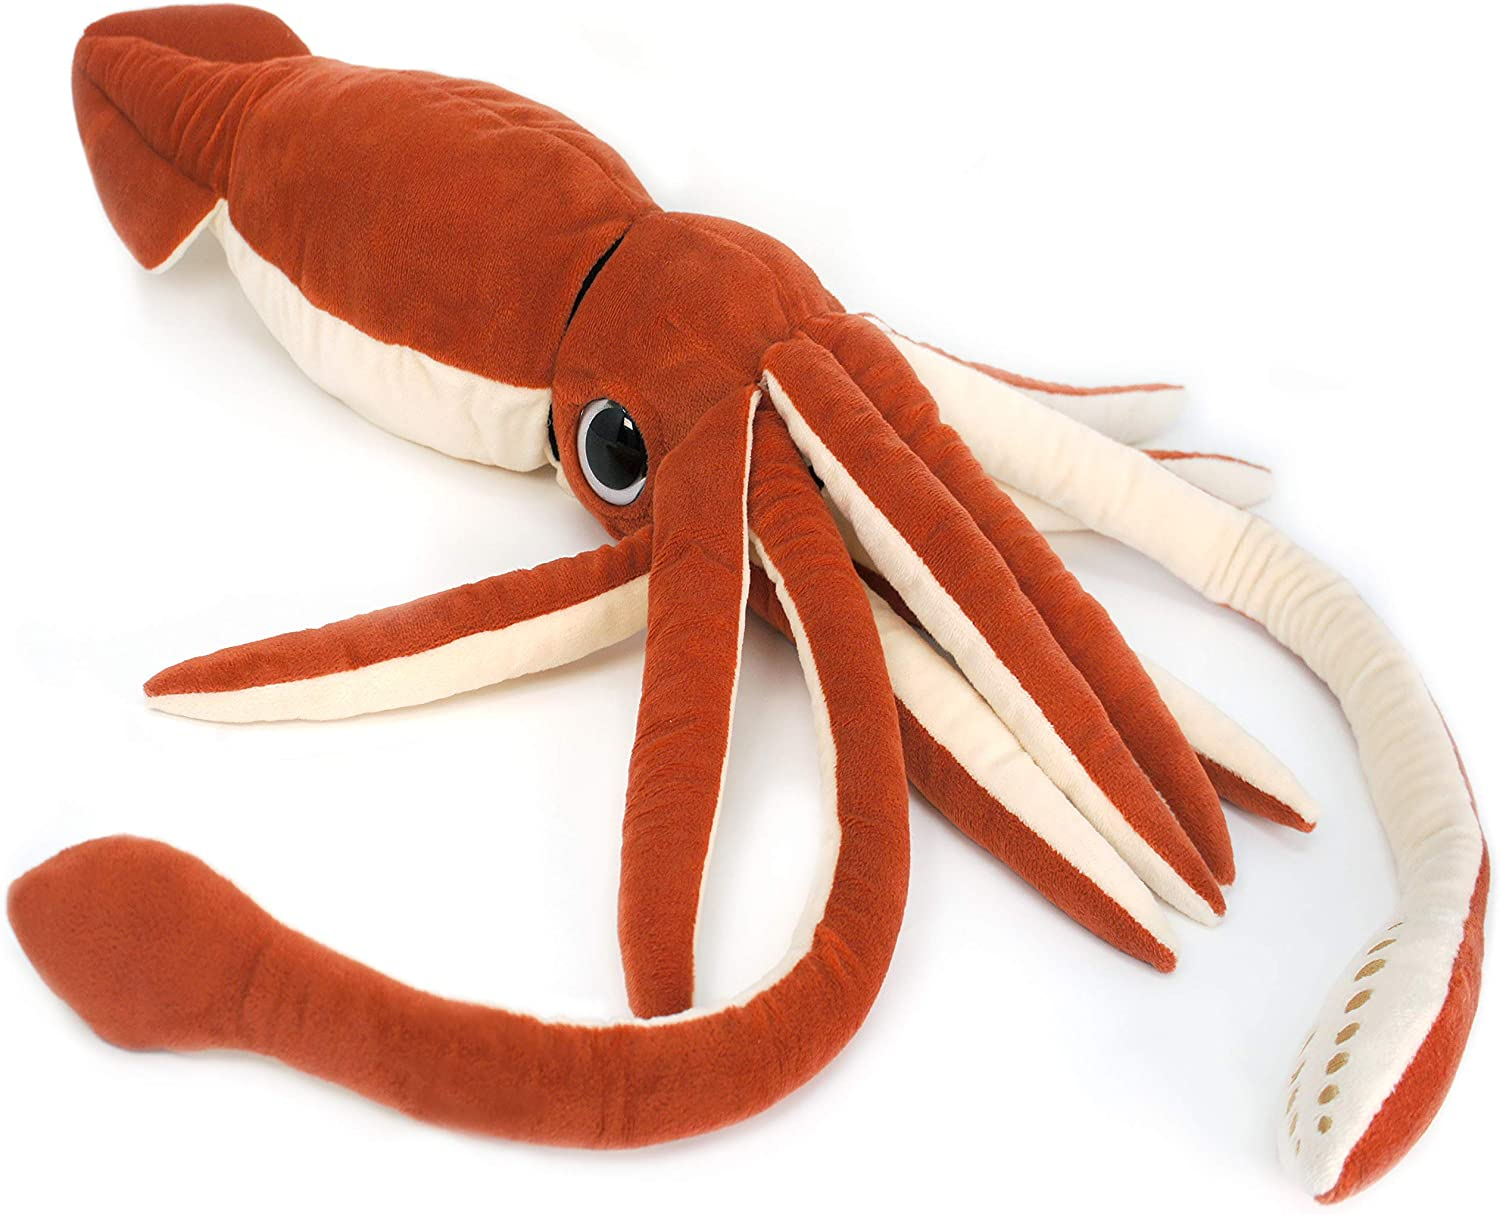 Amazon Com Viahart Shubert The Squid 35 Inch Large Stuffed Animal Squid By Tiger Tale Toys Toys Games